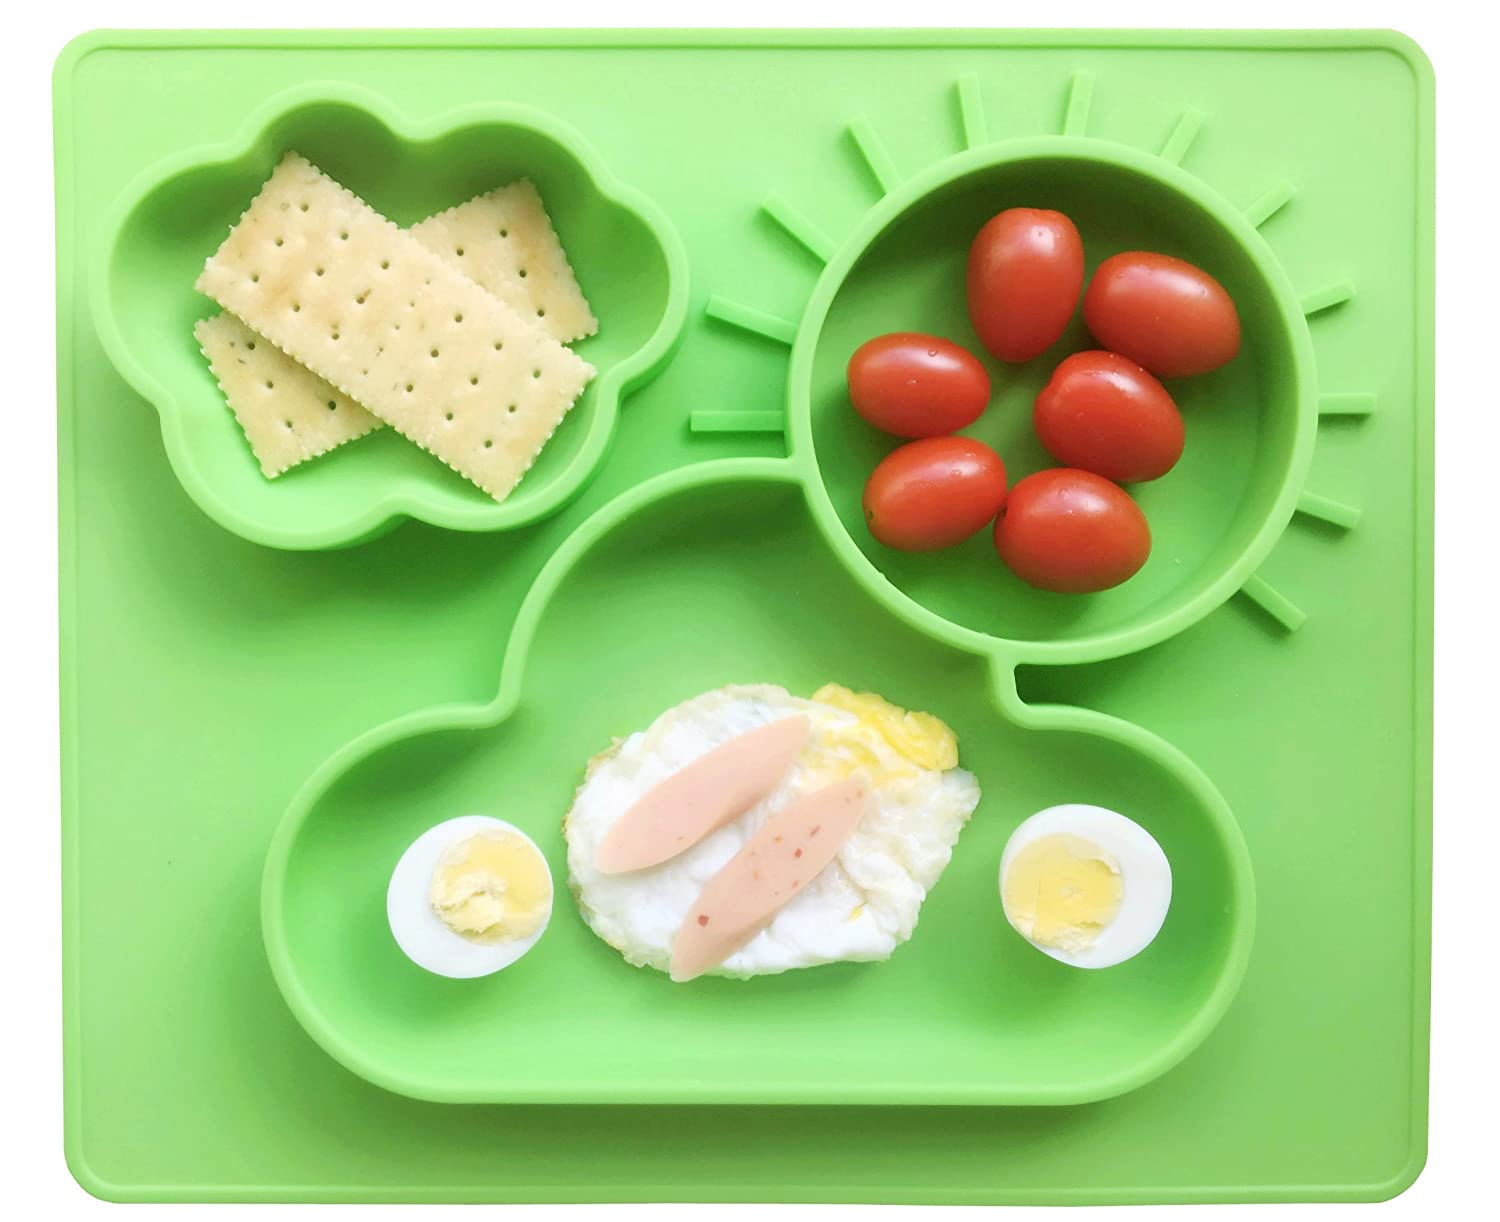 Ledsolver Silicone Baby Placemat and Spoon, 100% Suction Baby Plate, Food Grade Silicone Placemat for Toddlers (Green)